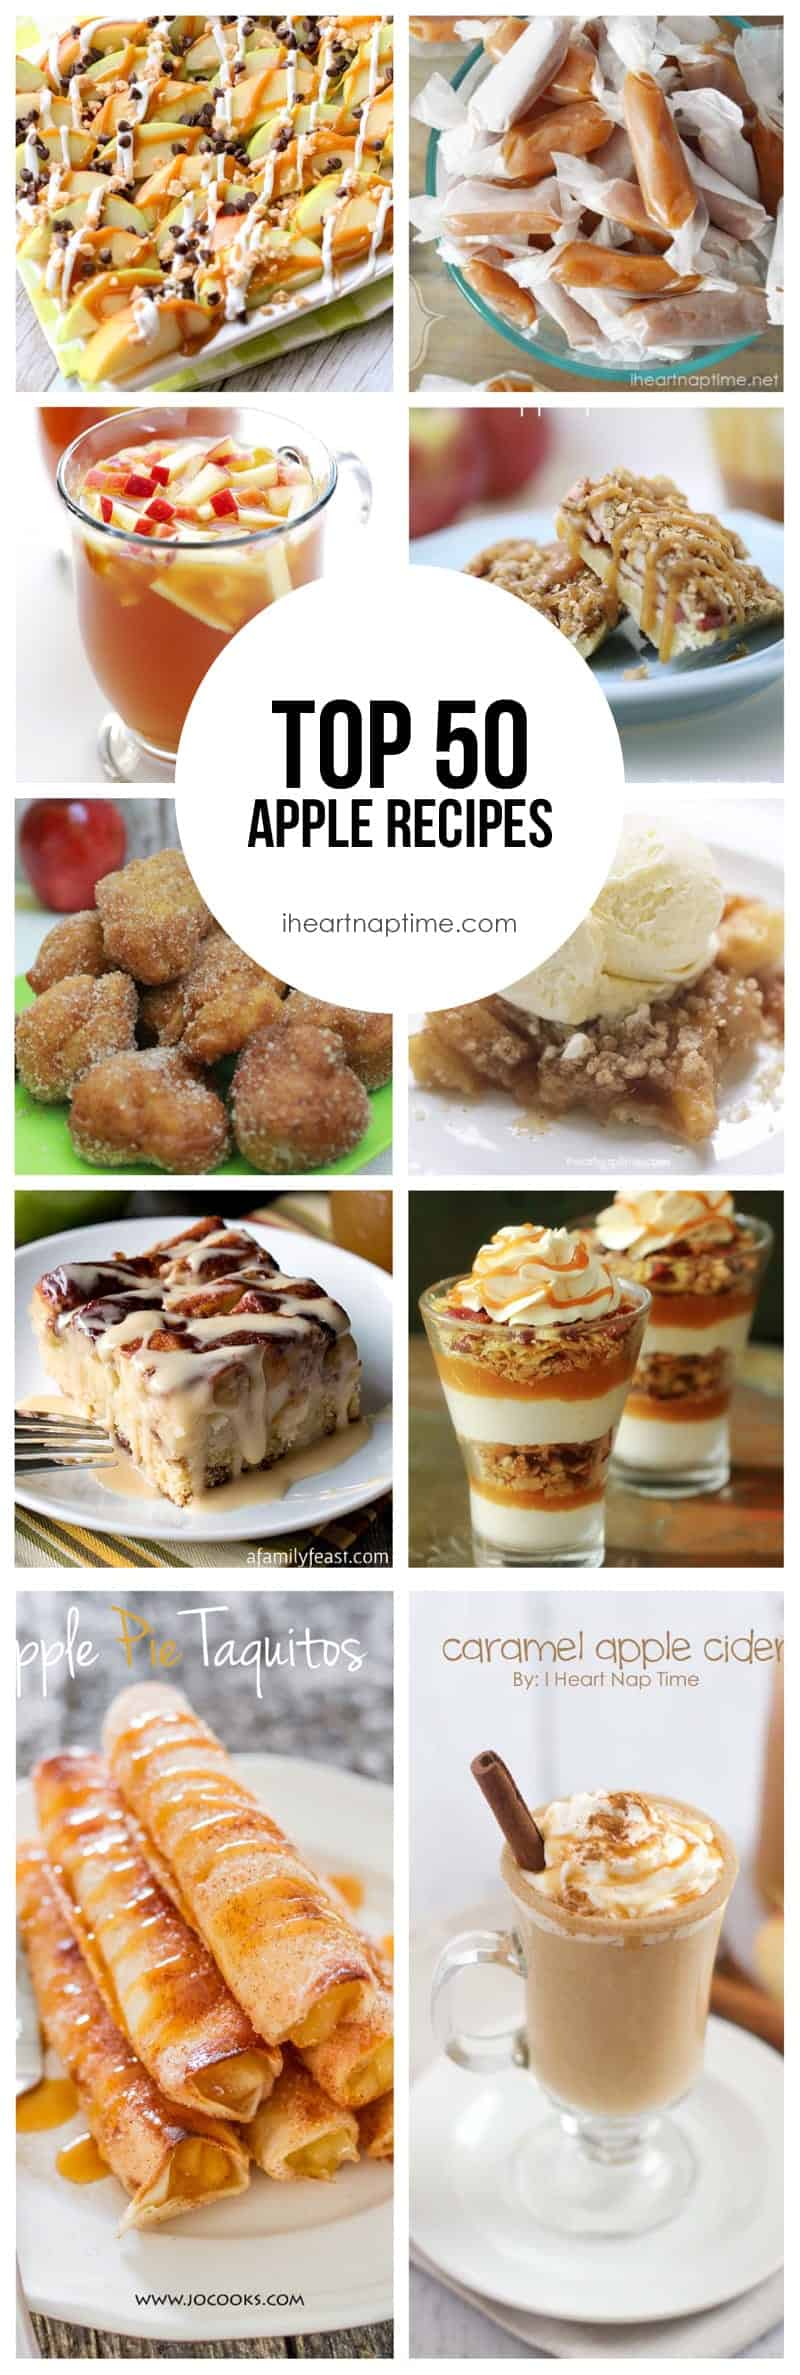 Top 50 Apple Recipes